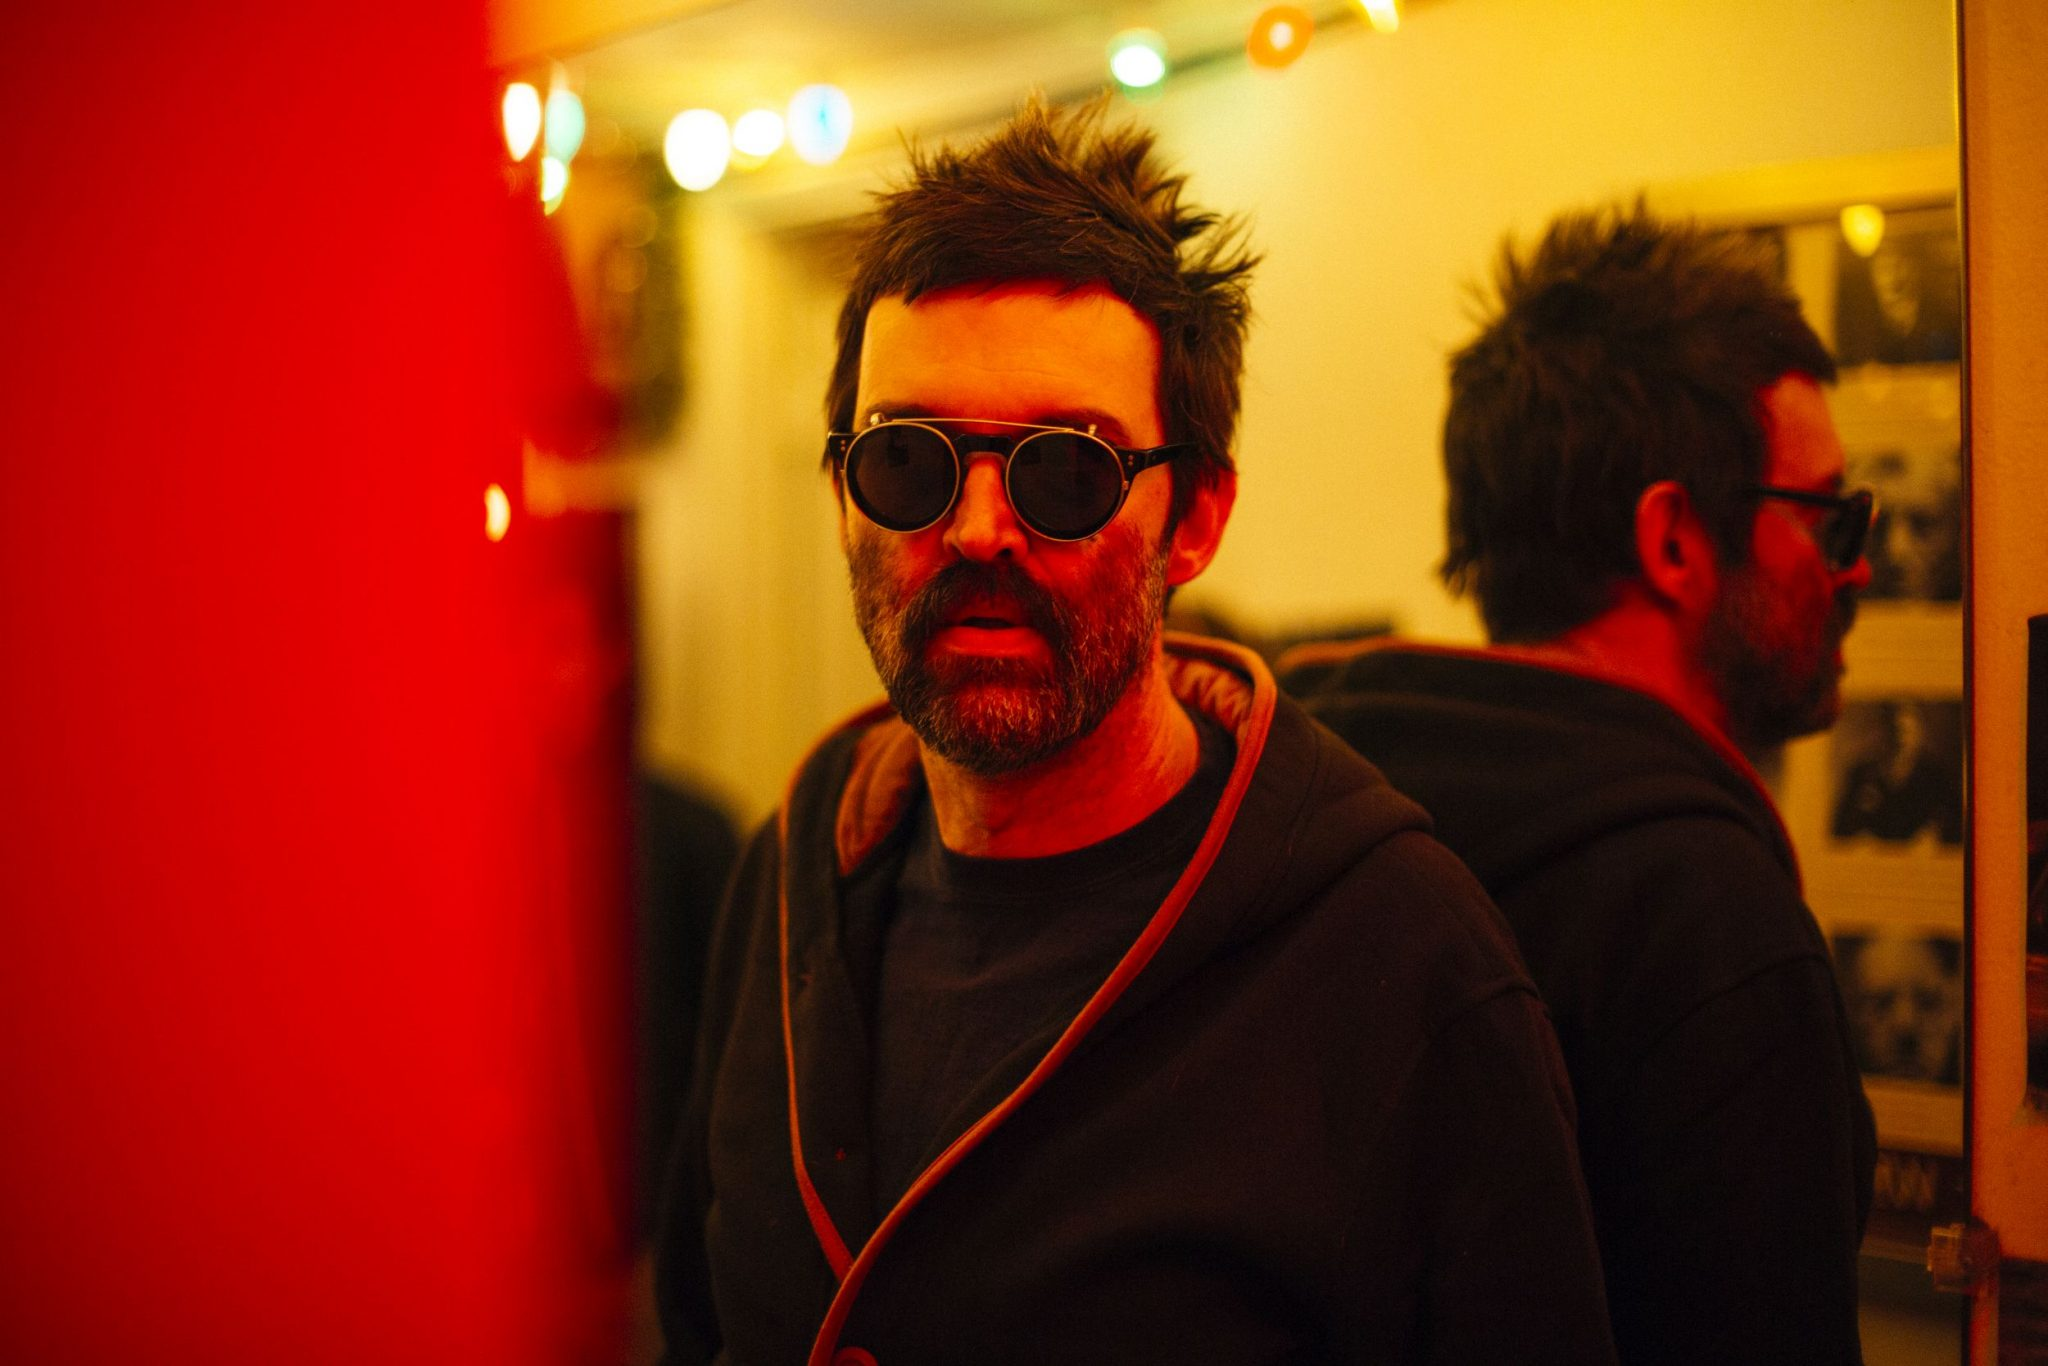 EELS - Today Is The Day (Official Video)